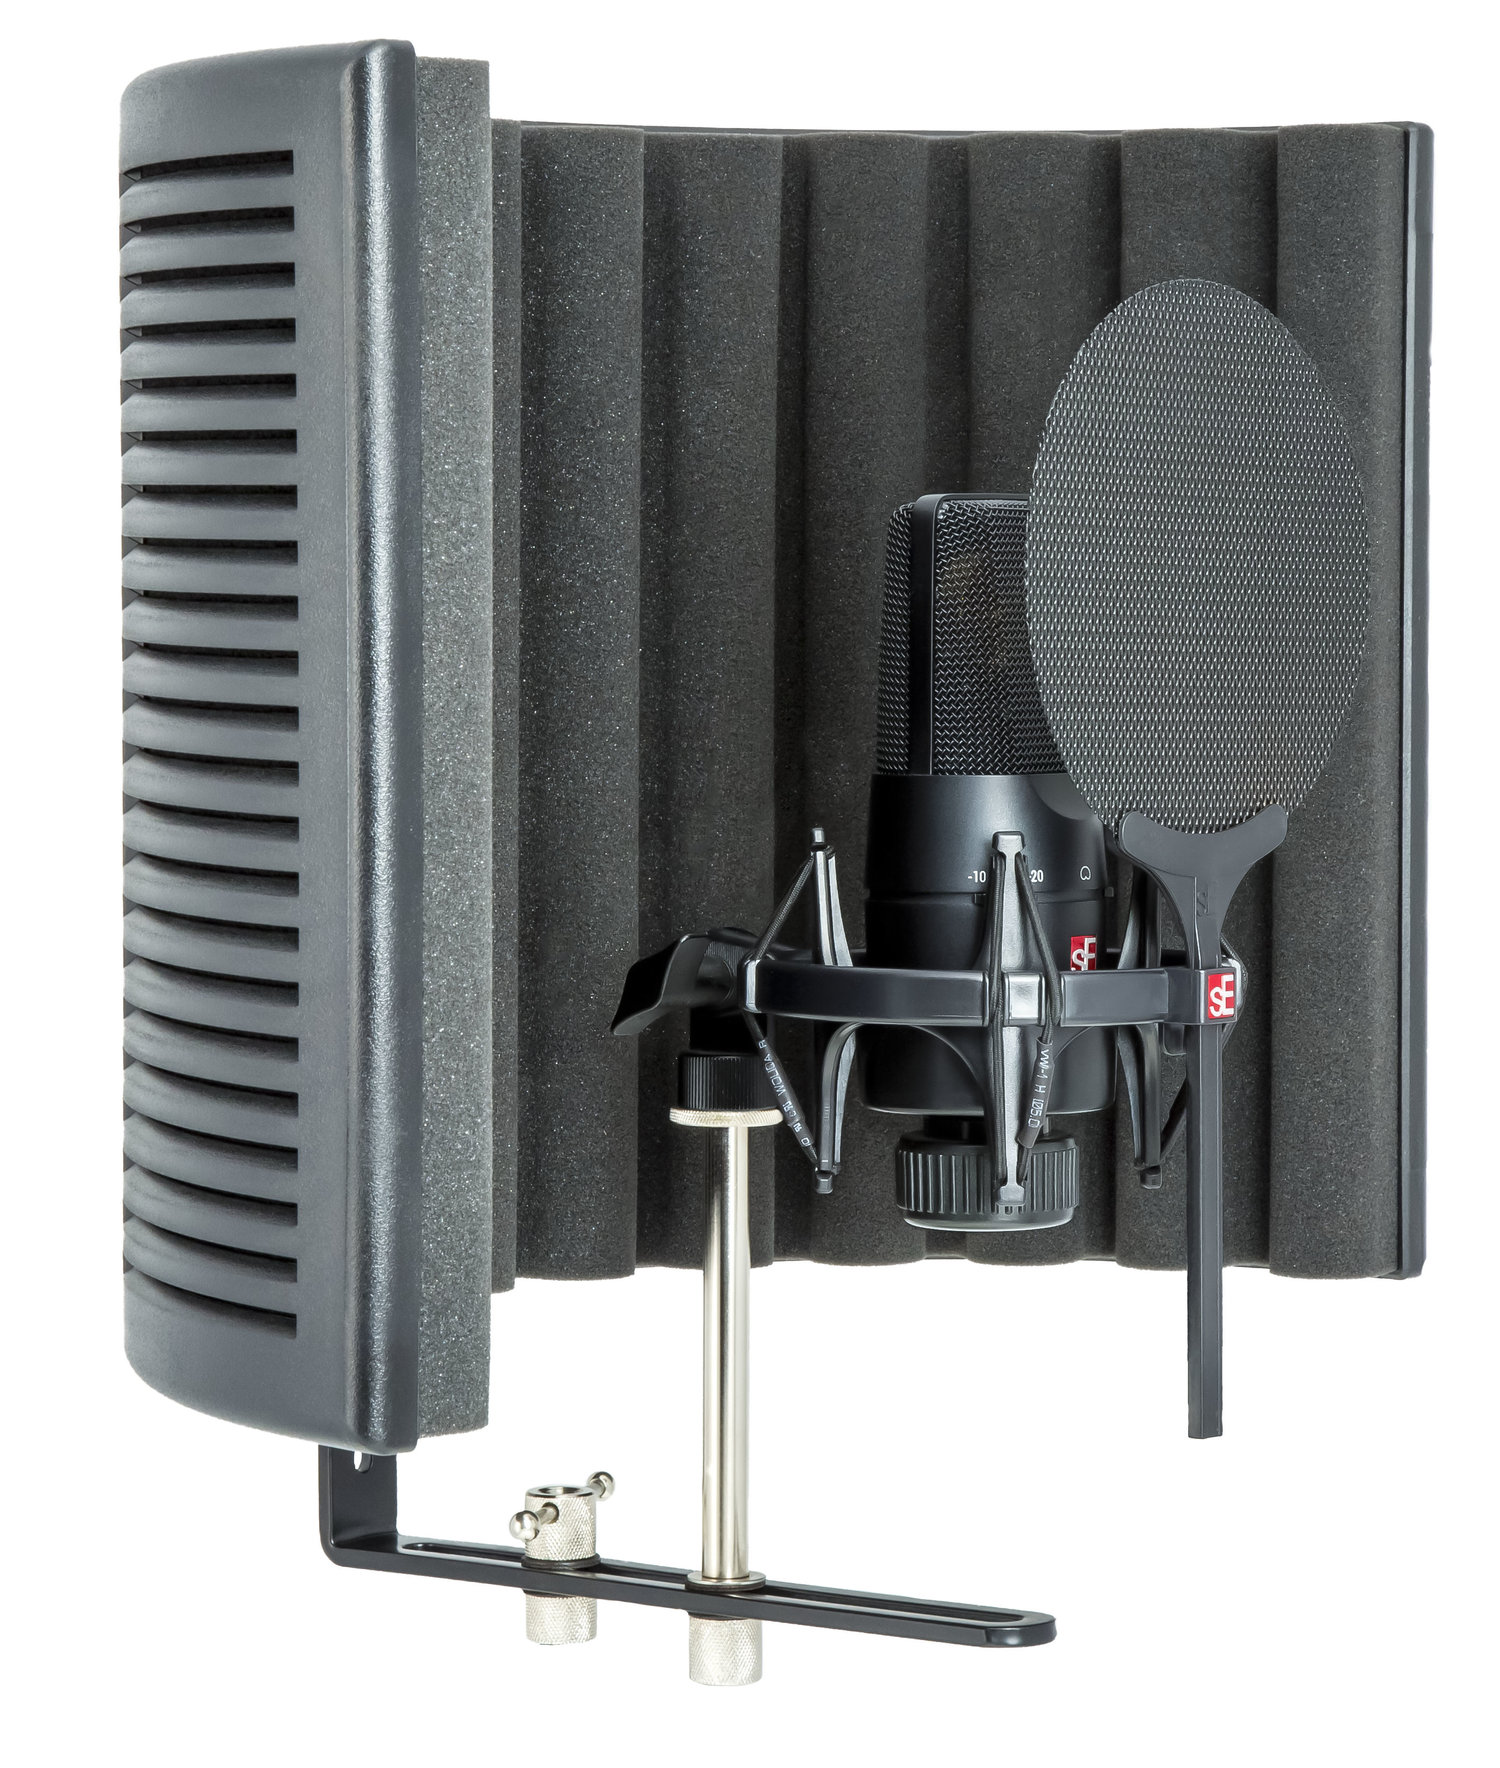 Se Electronics Reflexion Filter X Serial Mouse Wiring Diagram Adapters For The Acorn X1 S Studio Bundle Perspective Left On White 3071 Edit